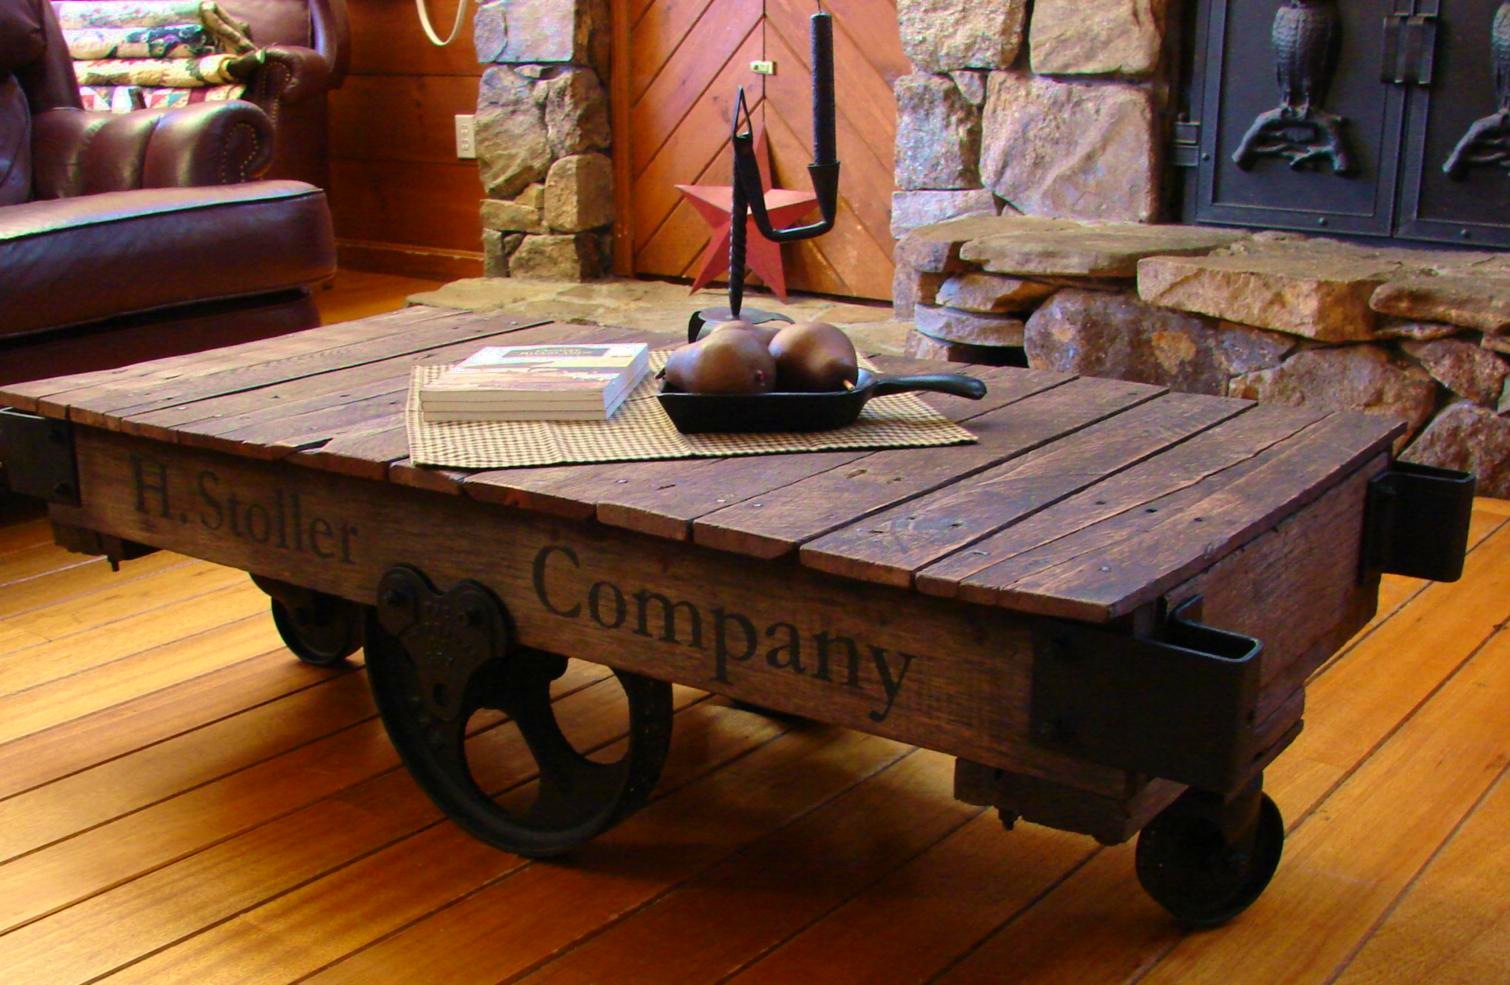 Redesigned table made from old industrial items such as metal cogs